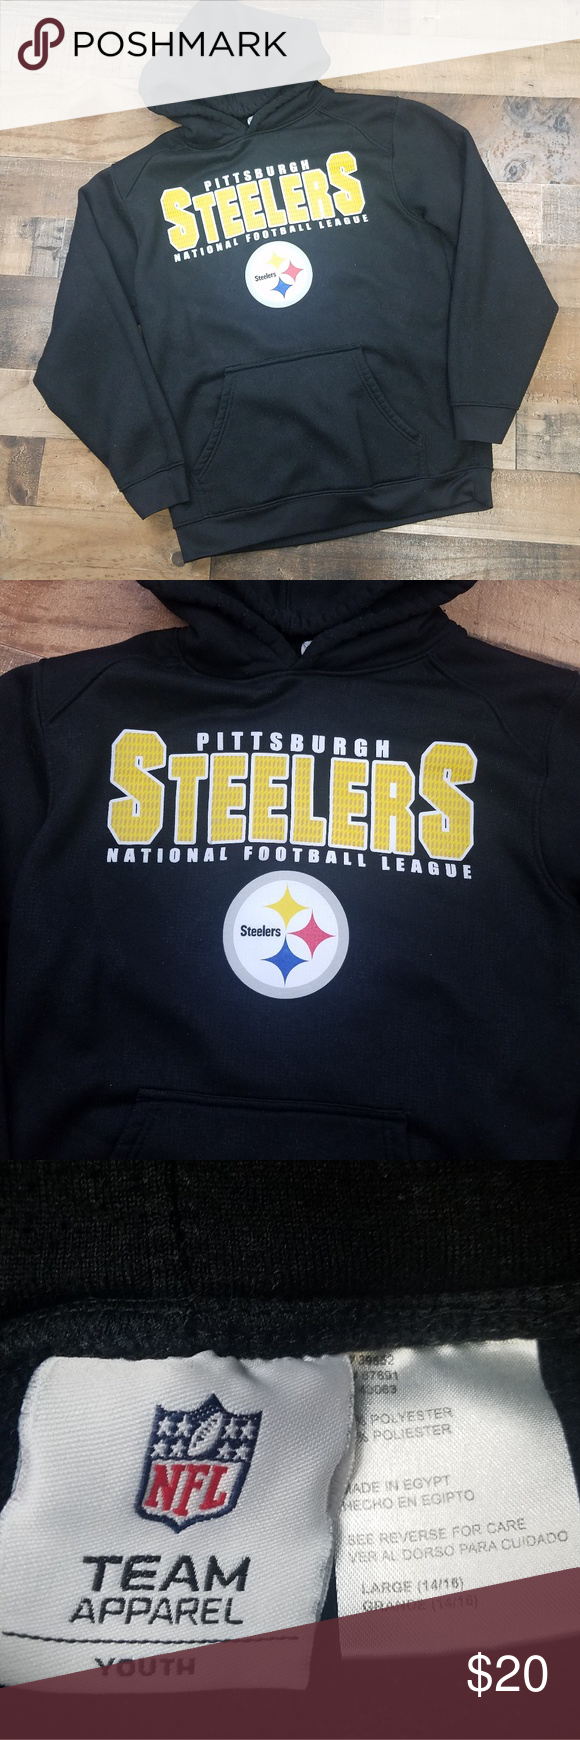 online store d7307 36e75 🌷NFL Team Apparel PITTSBURGH STEELERS Hoodie NFL Team ...